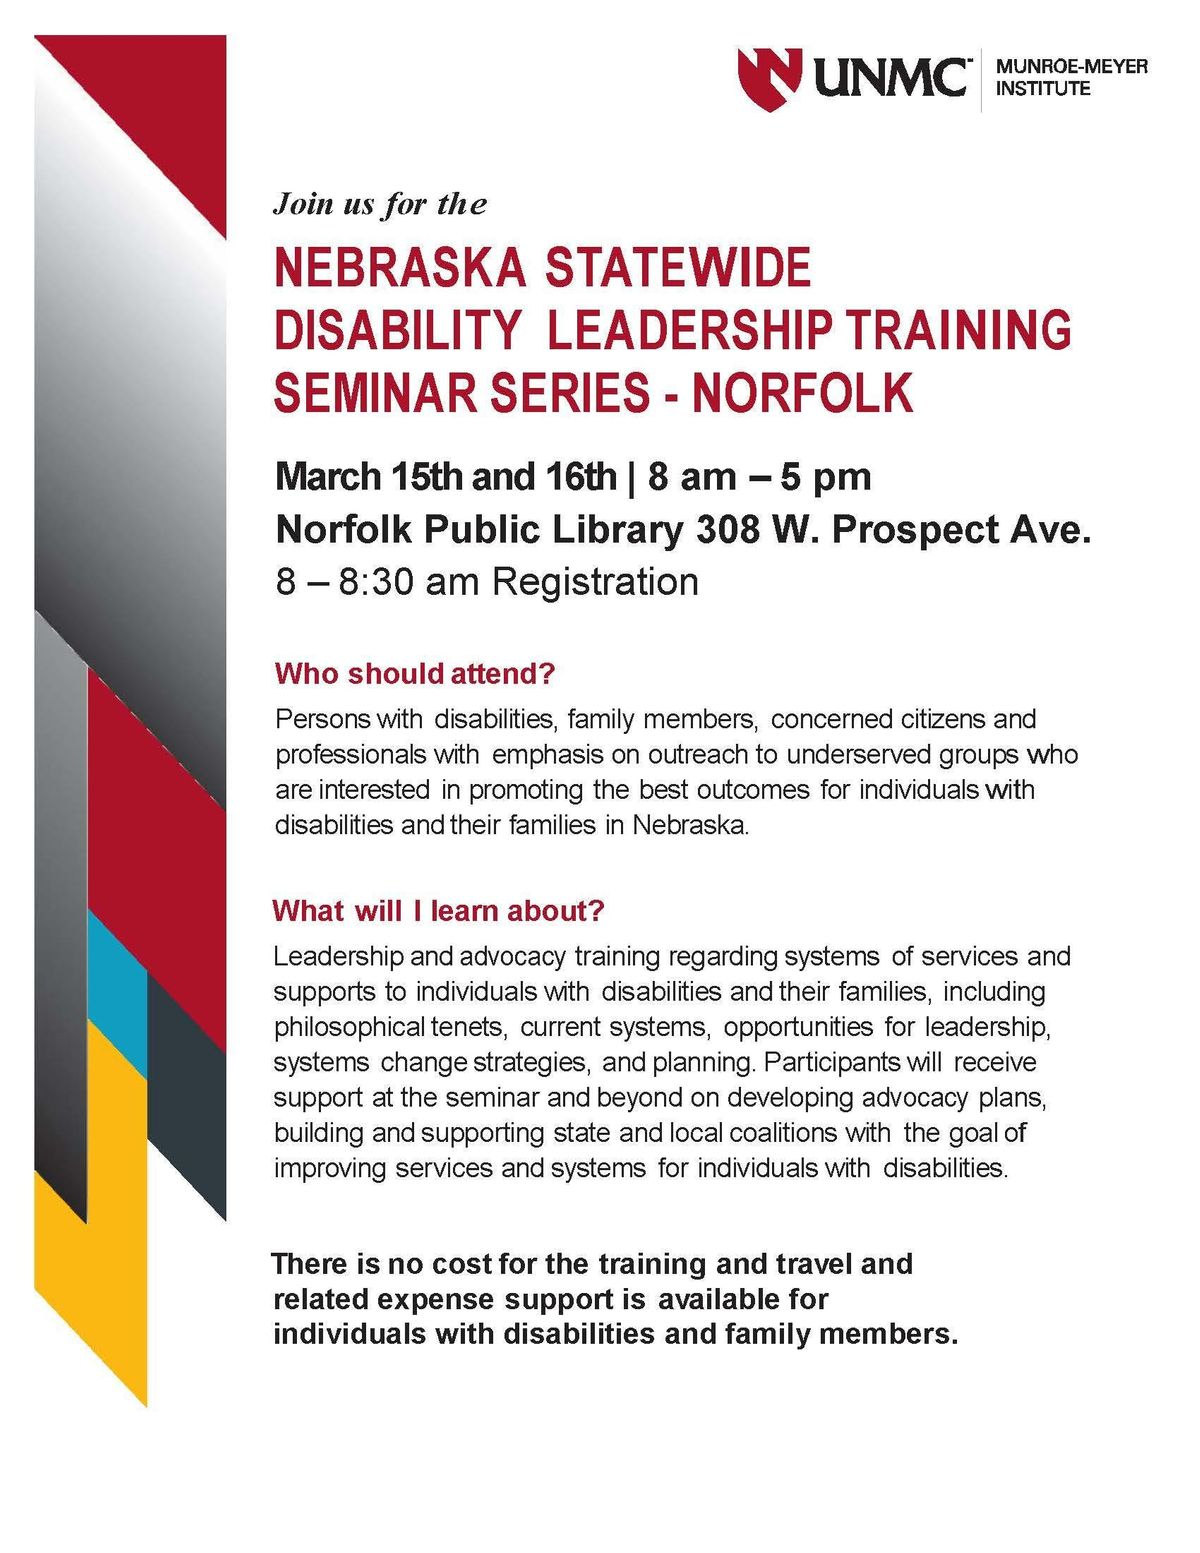 Disability Advocates Concerned By Plan >> Nebraska Statewide Disability Leadership Training Seminar Series At